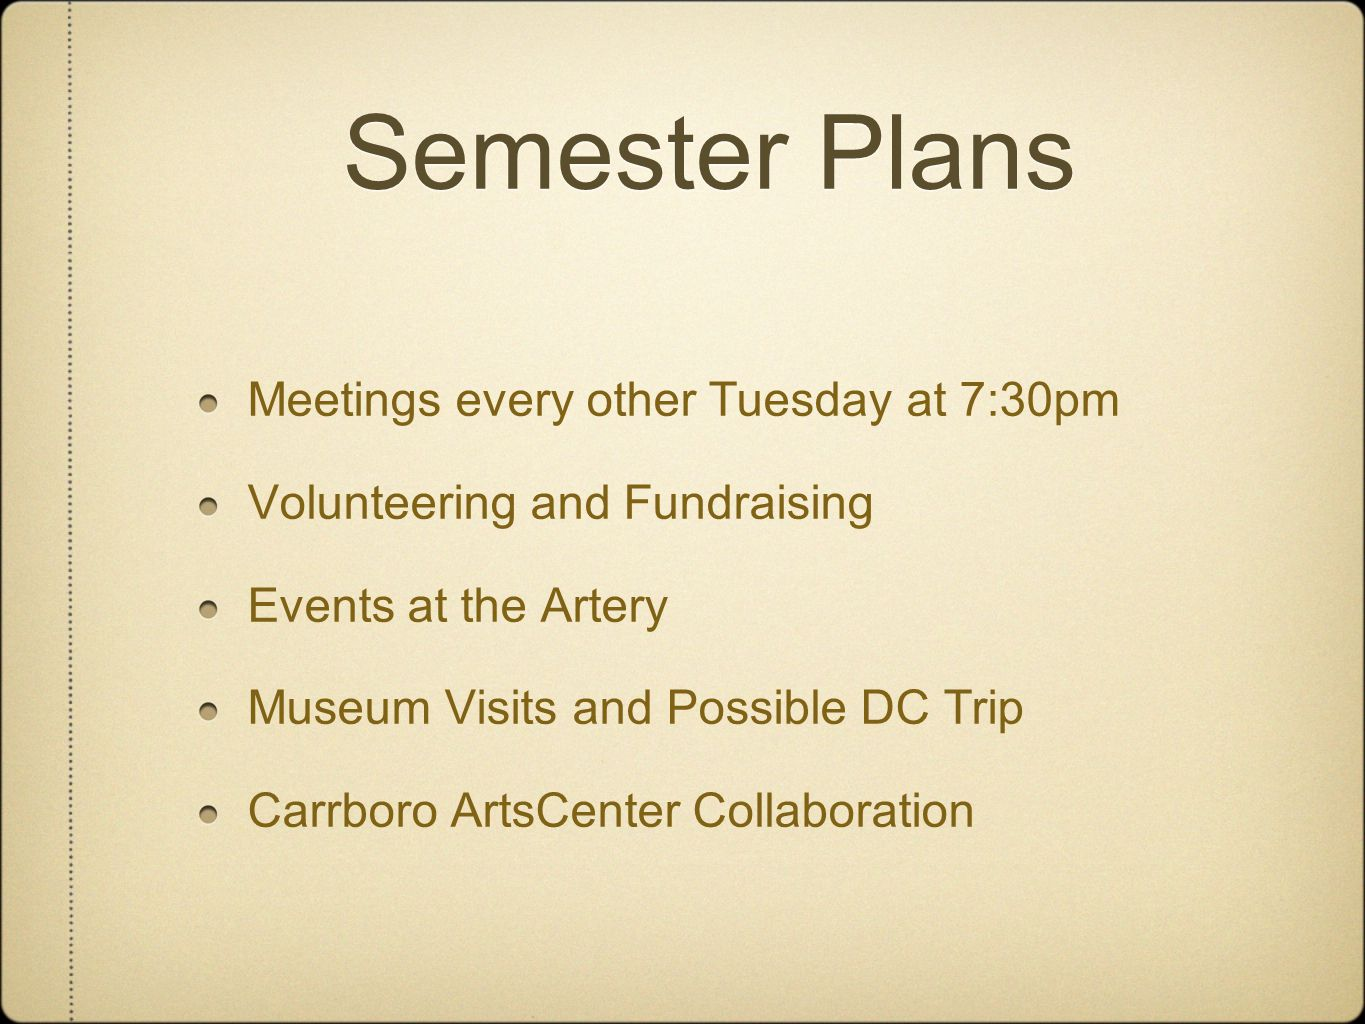 Semester Plans Meetings every other Tuesday at 7:30pm Volunteering and Fundraising Events at the Artery Museum Visits and Possible DC Trip Carrboro ArtsCenter Collaboration